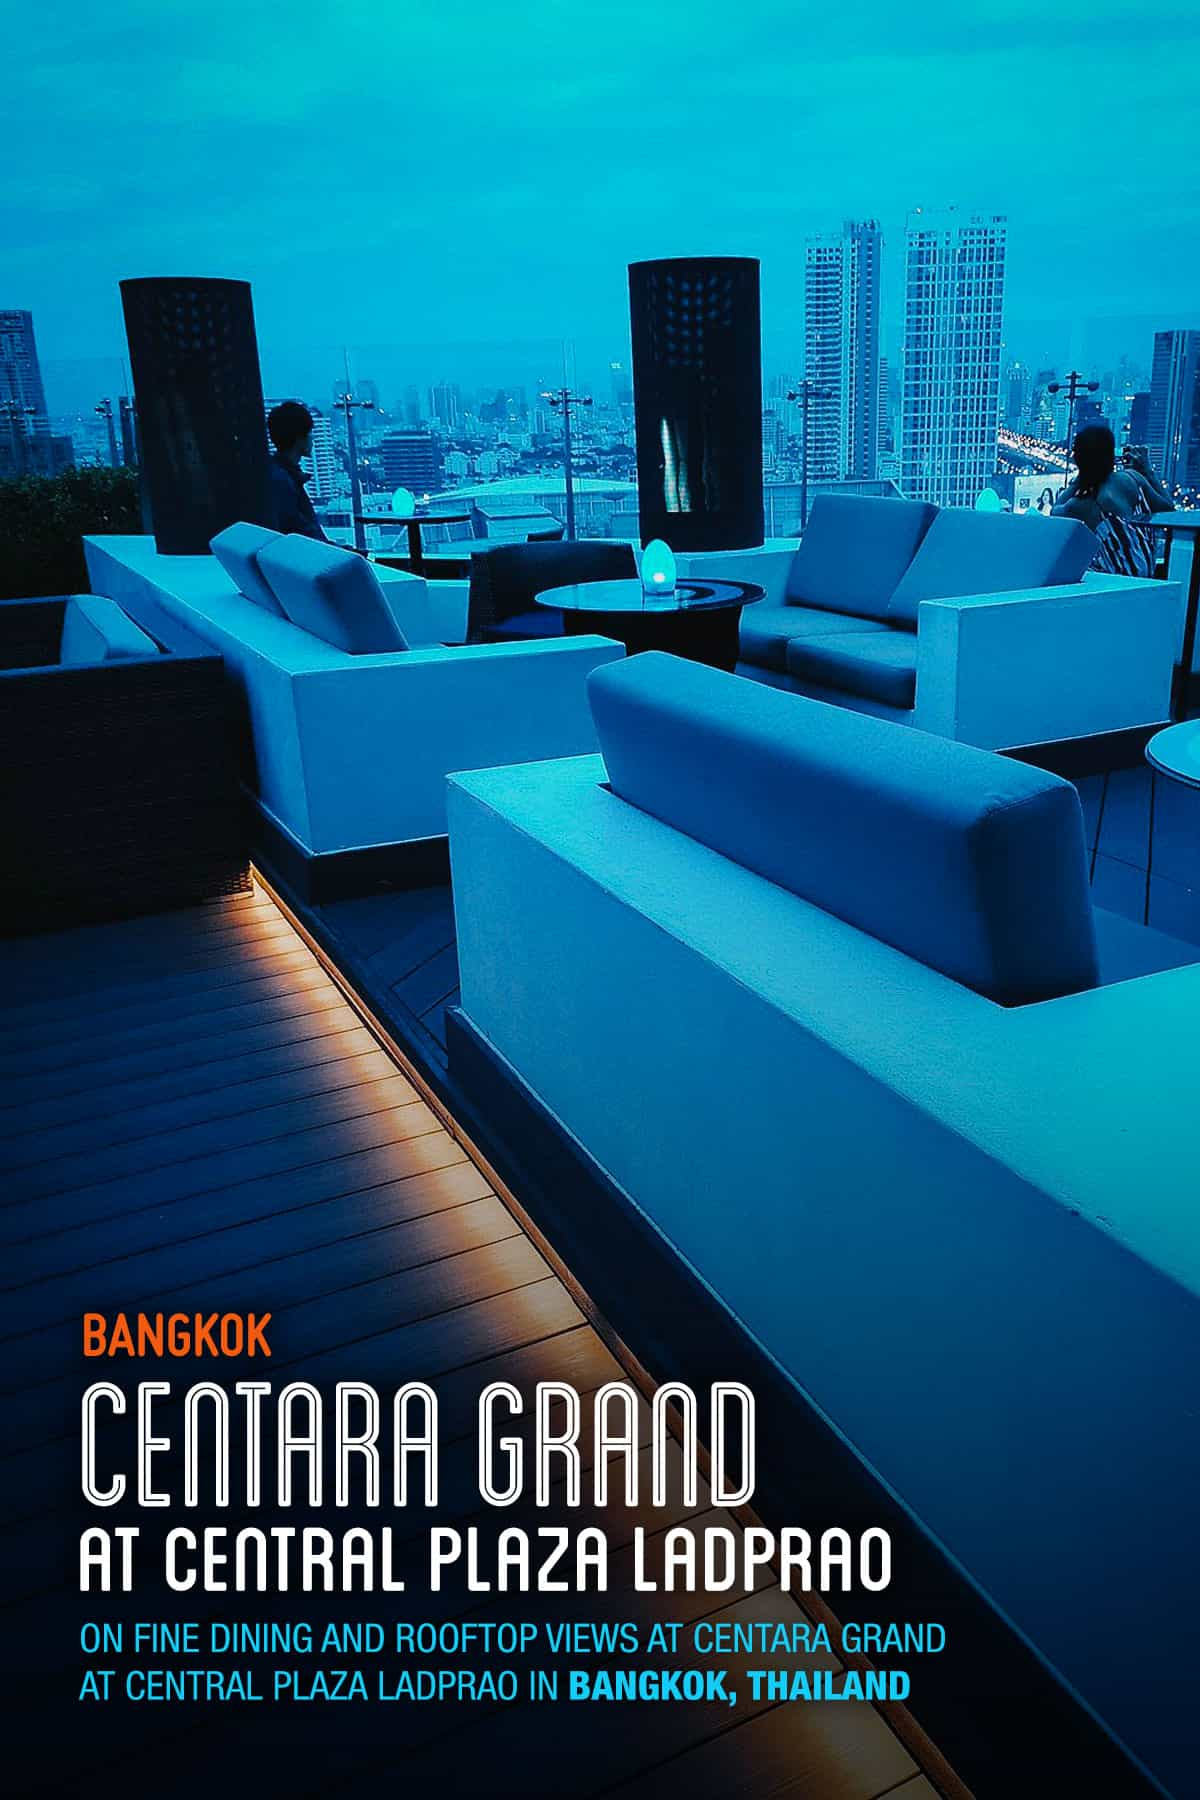 Rooftop bar at Centara Grand at Central Plaza Ladprao